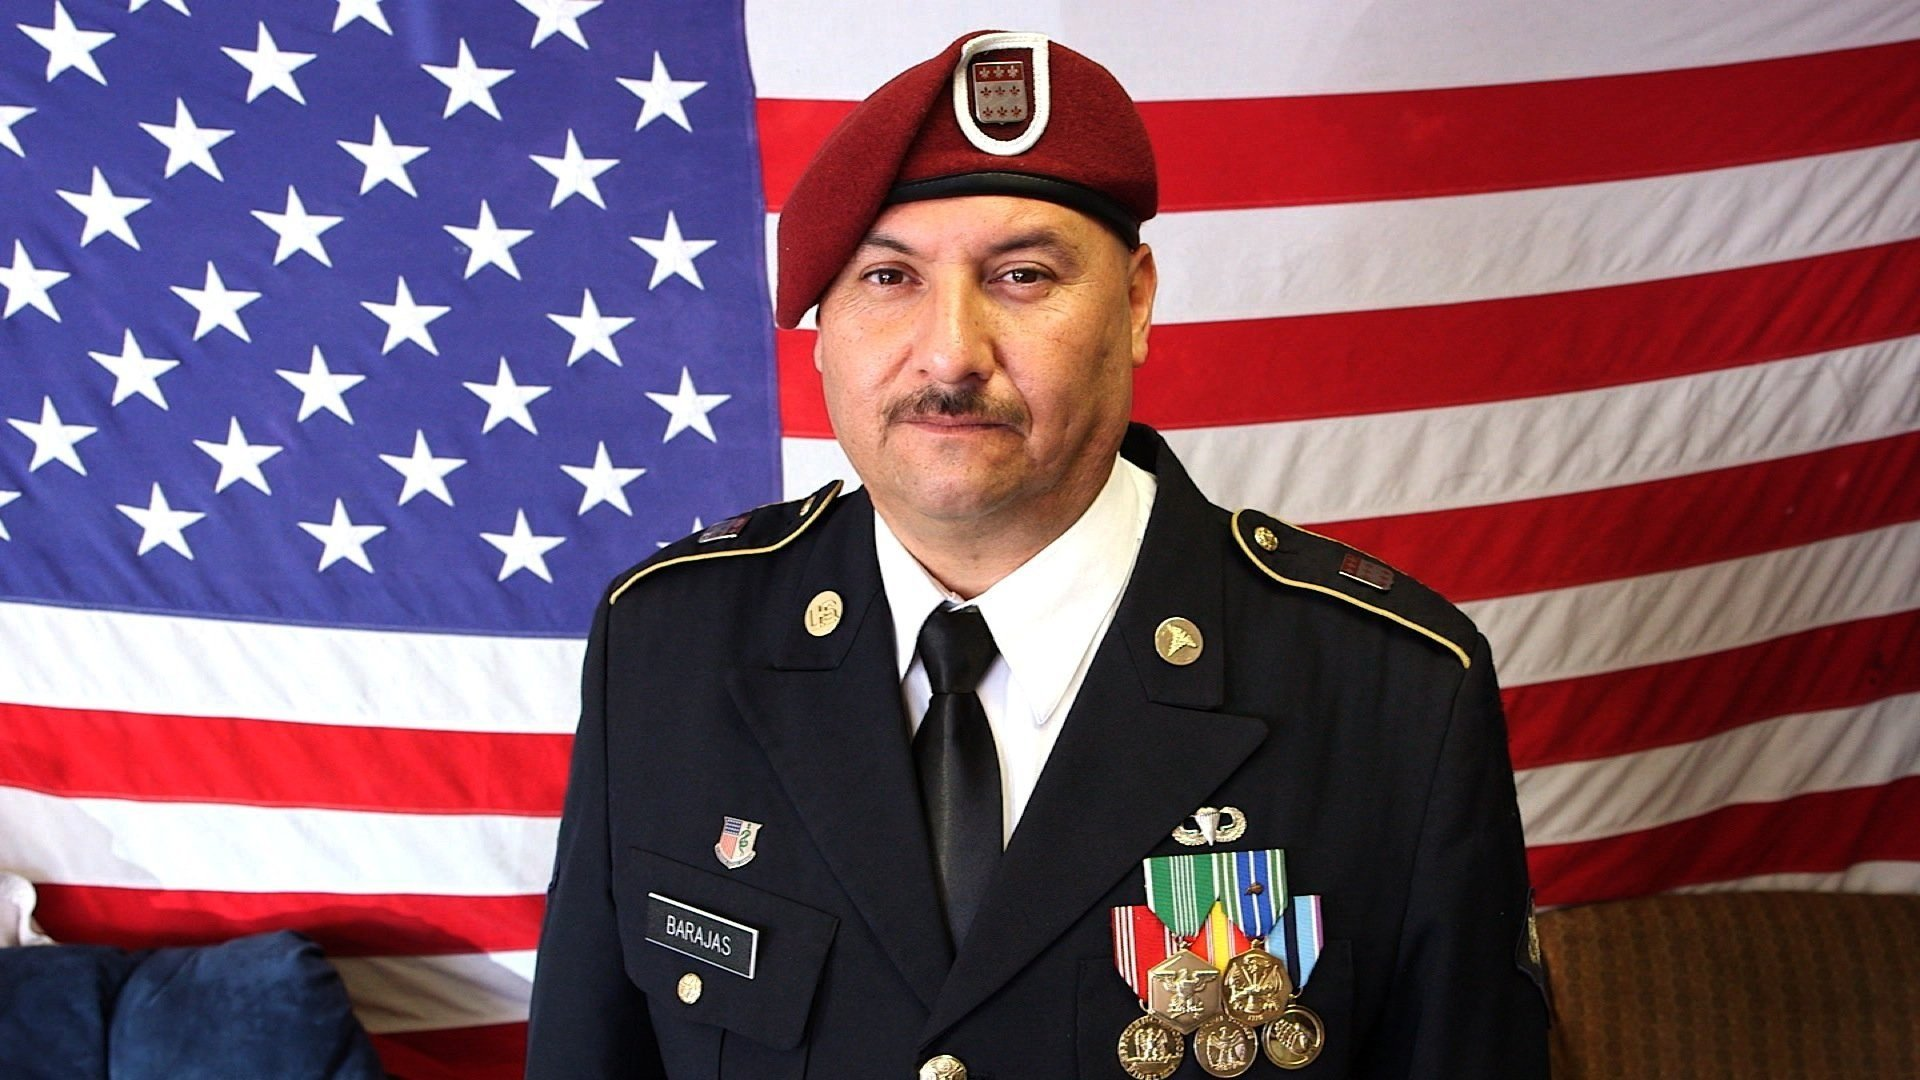 Deported Mexico-born veteran returns to United States to become citizen